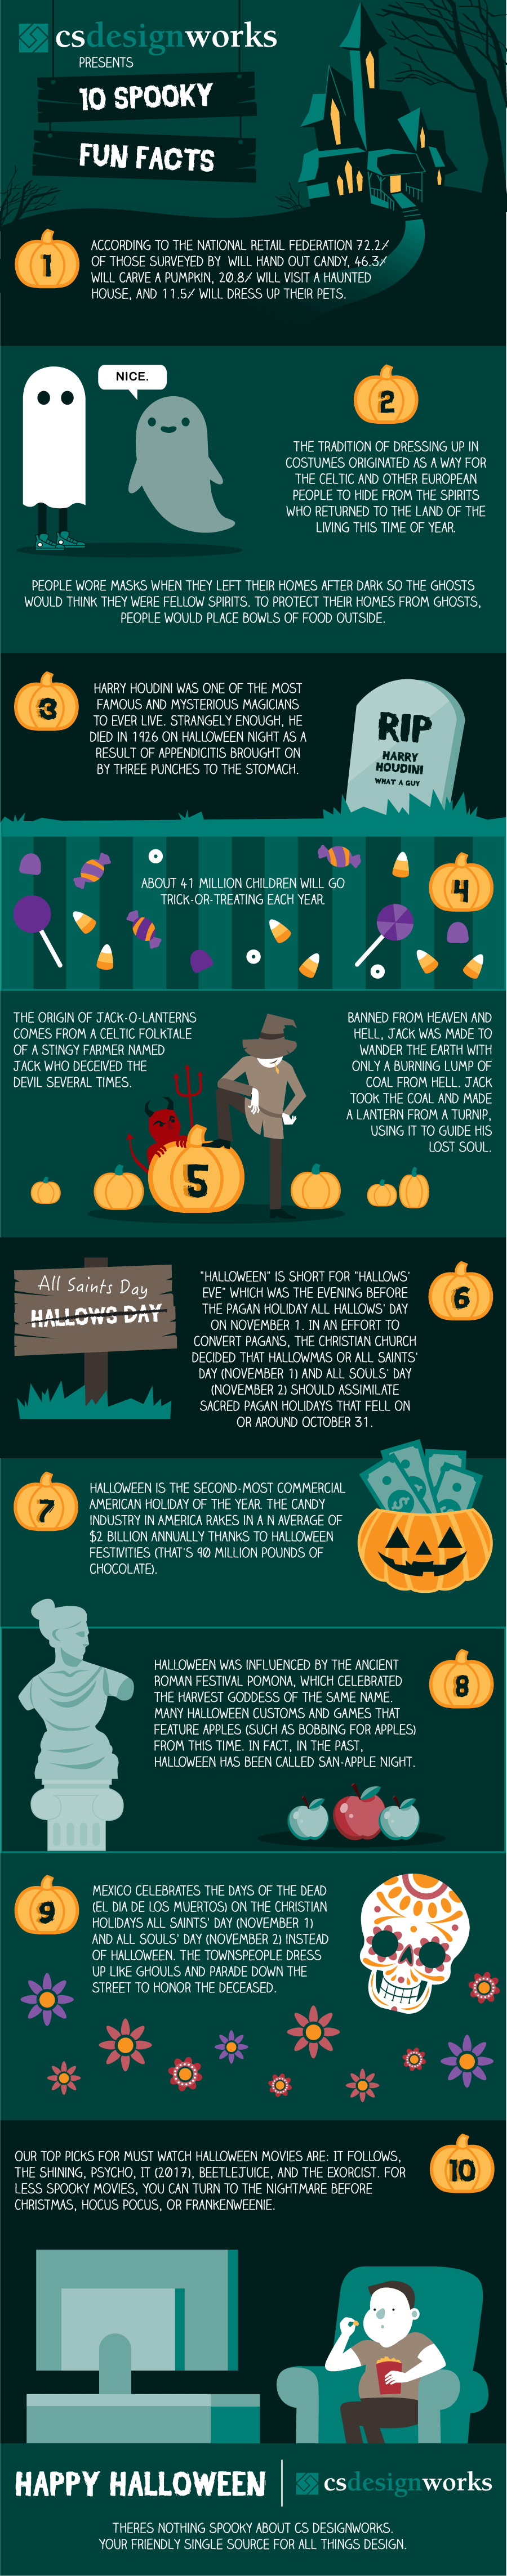 ten spooky fun facts about halloween